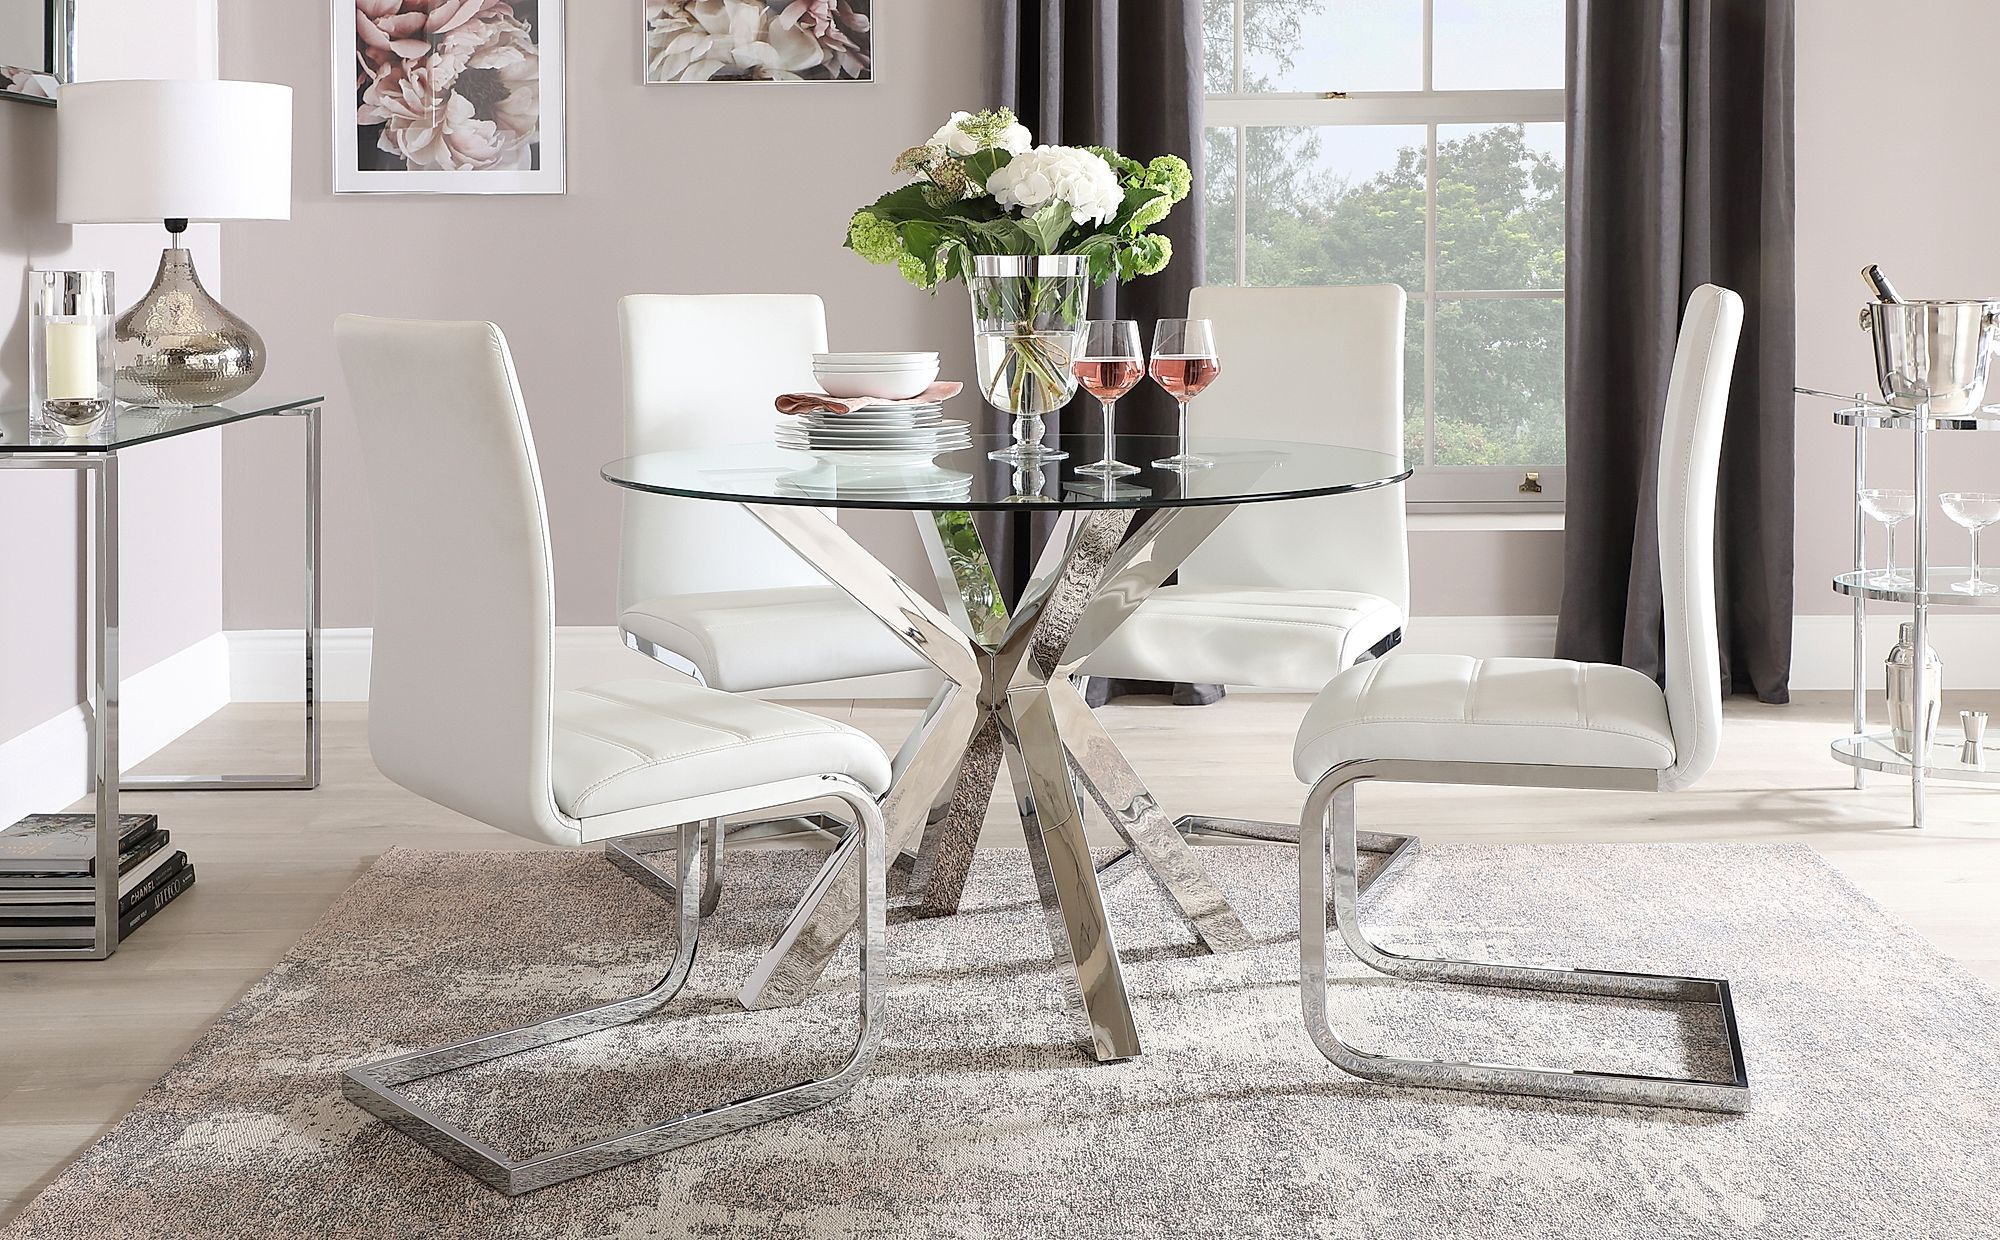 Plaza Round Chrome And Glass Dining Table With 4 Perth White